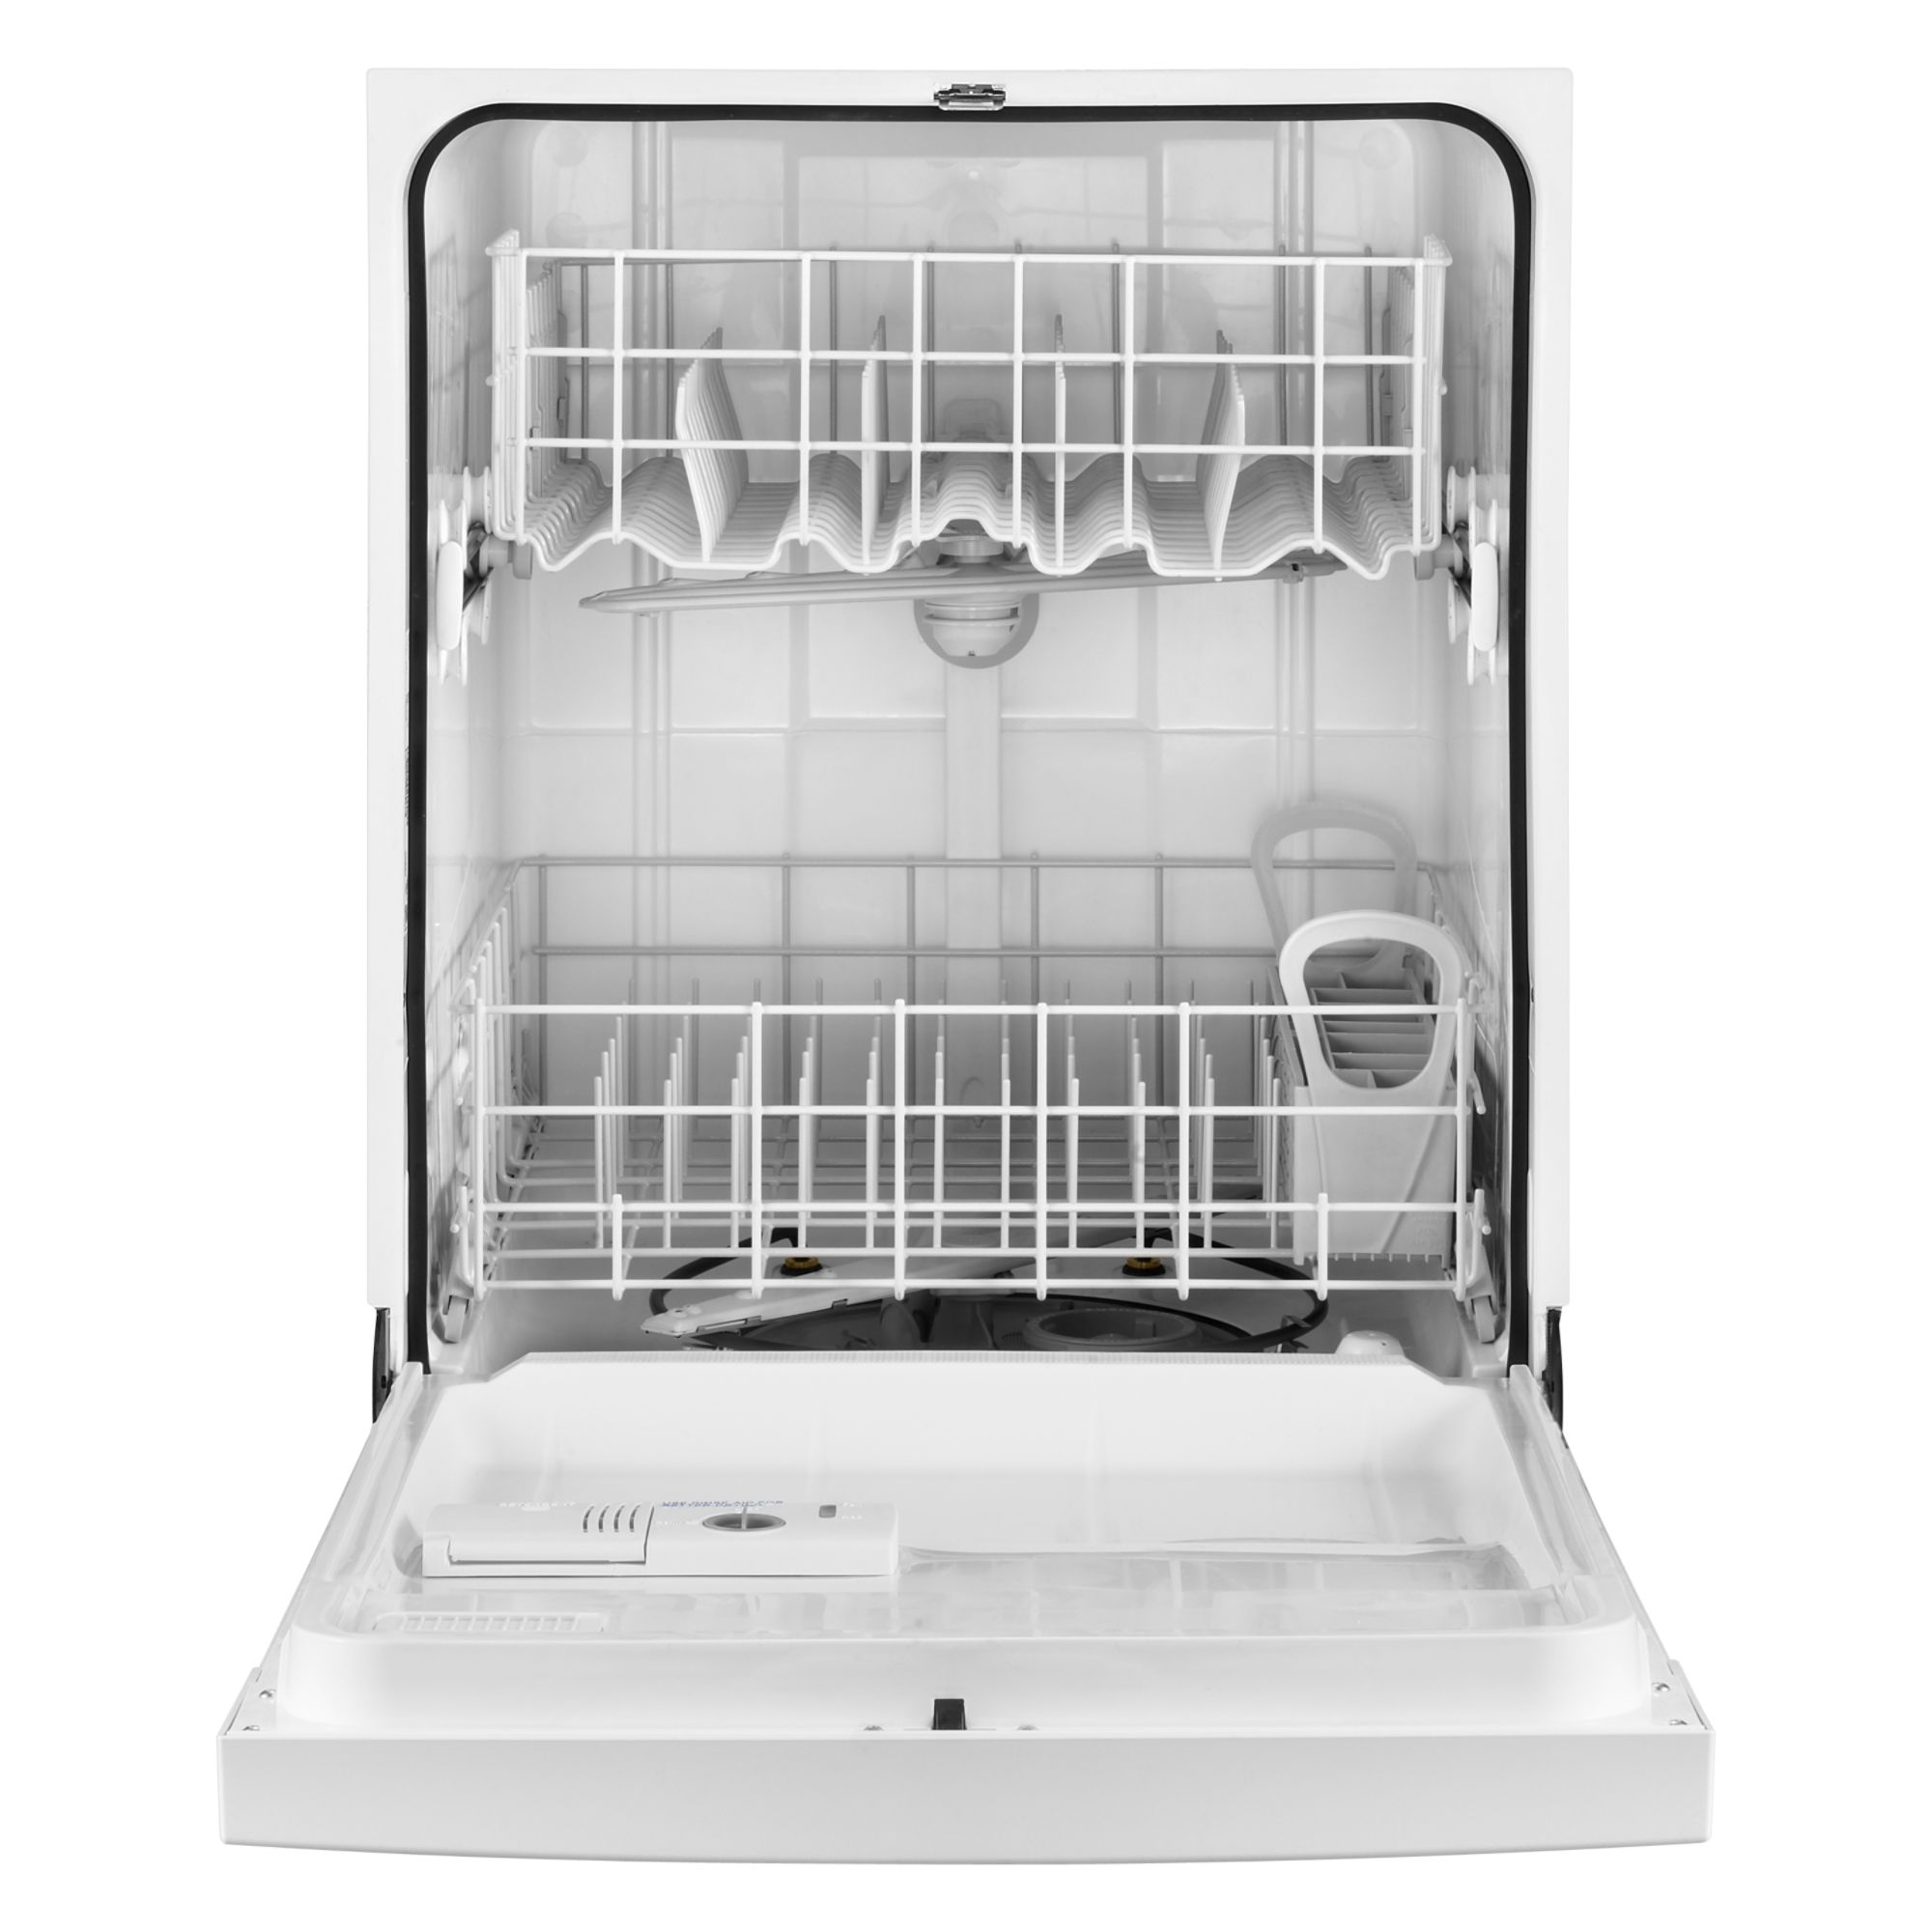 "Whirlpool 24"" Built-In Dishwasher w/ Resource-Efficient Wash System - White"